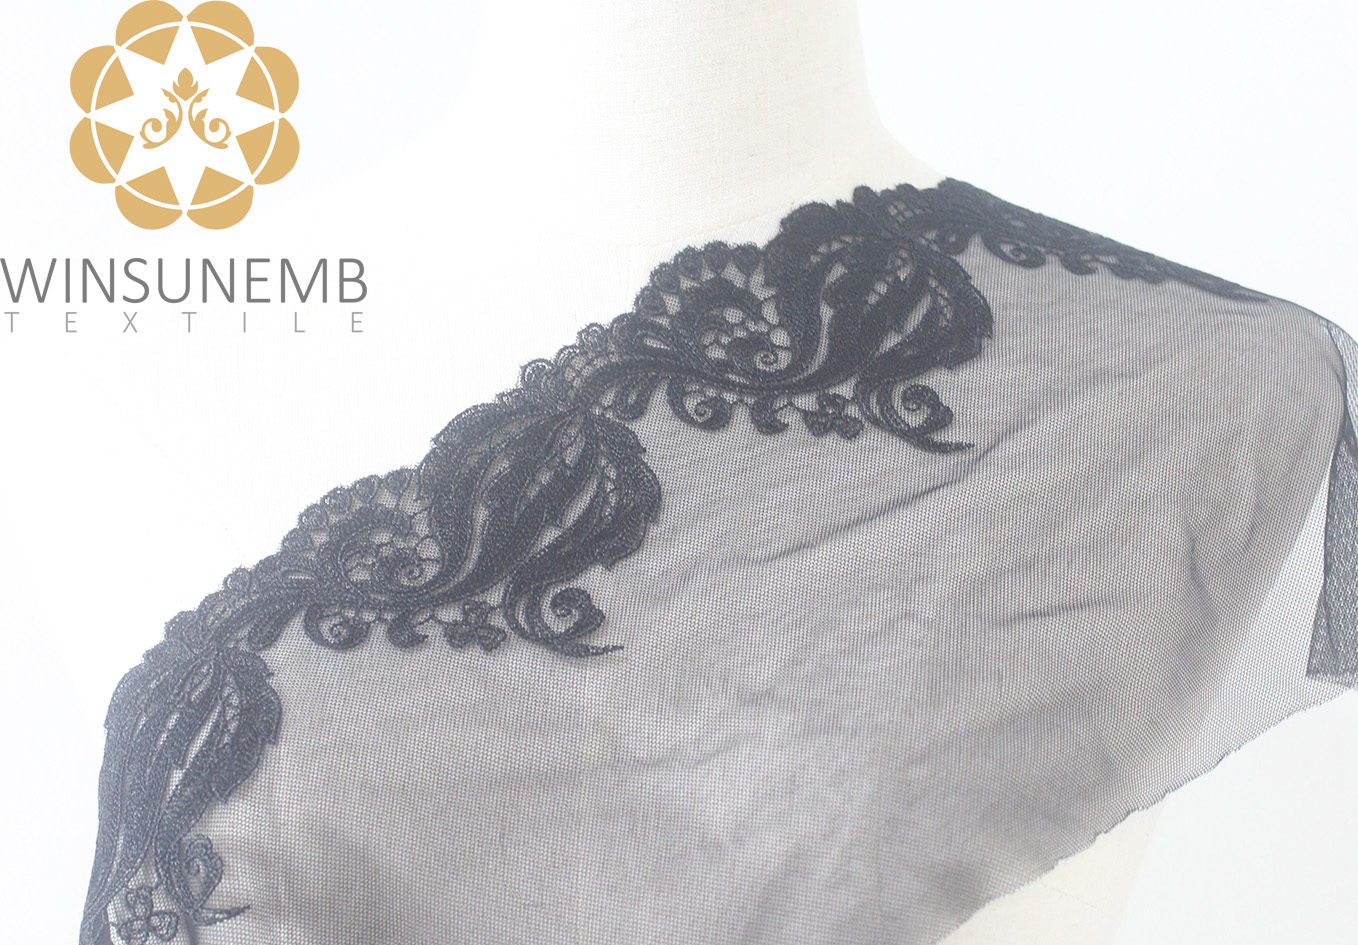 Surrounded by love mermaid single-wave embroidery lace 21 cm, 100% polyester, underwear, wedding dresses, gifts, decorative lace.-Winsunemb